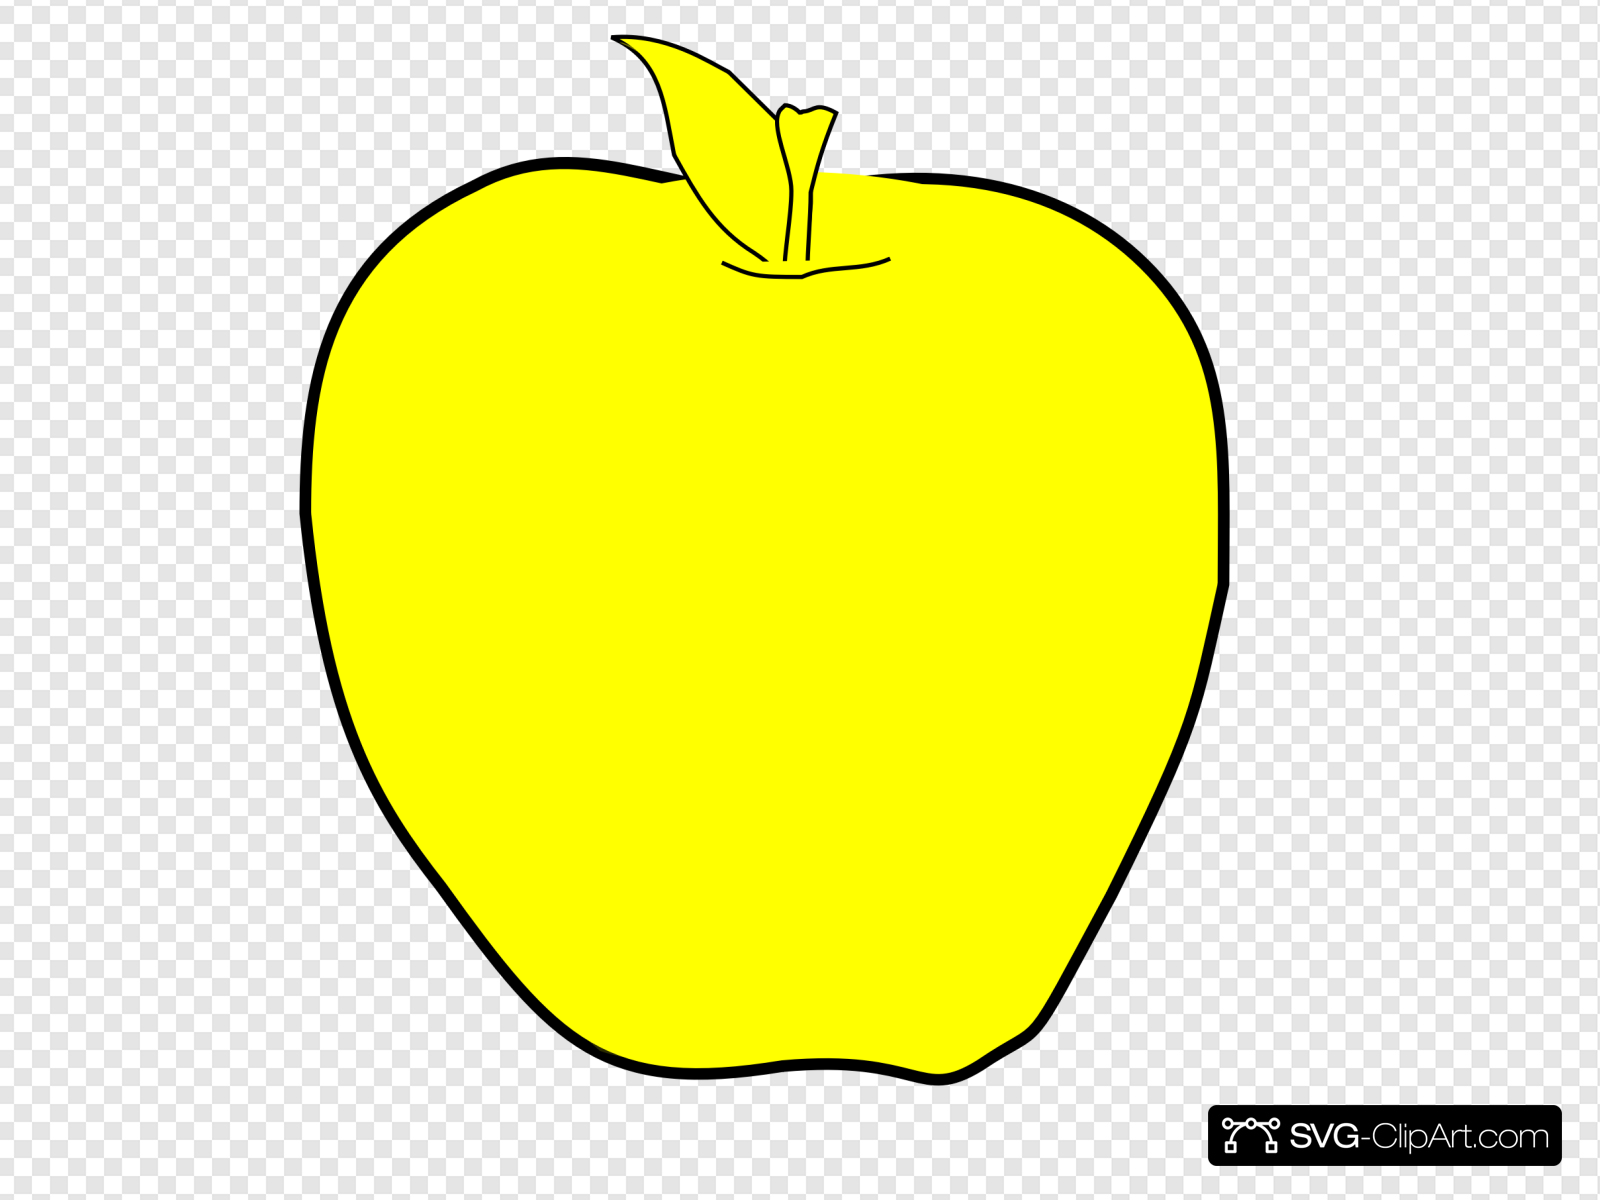 Yellow Apple Clip art, Icon and SVG.